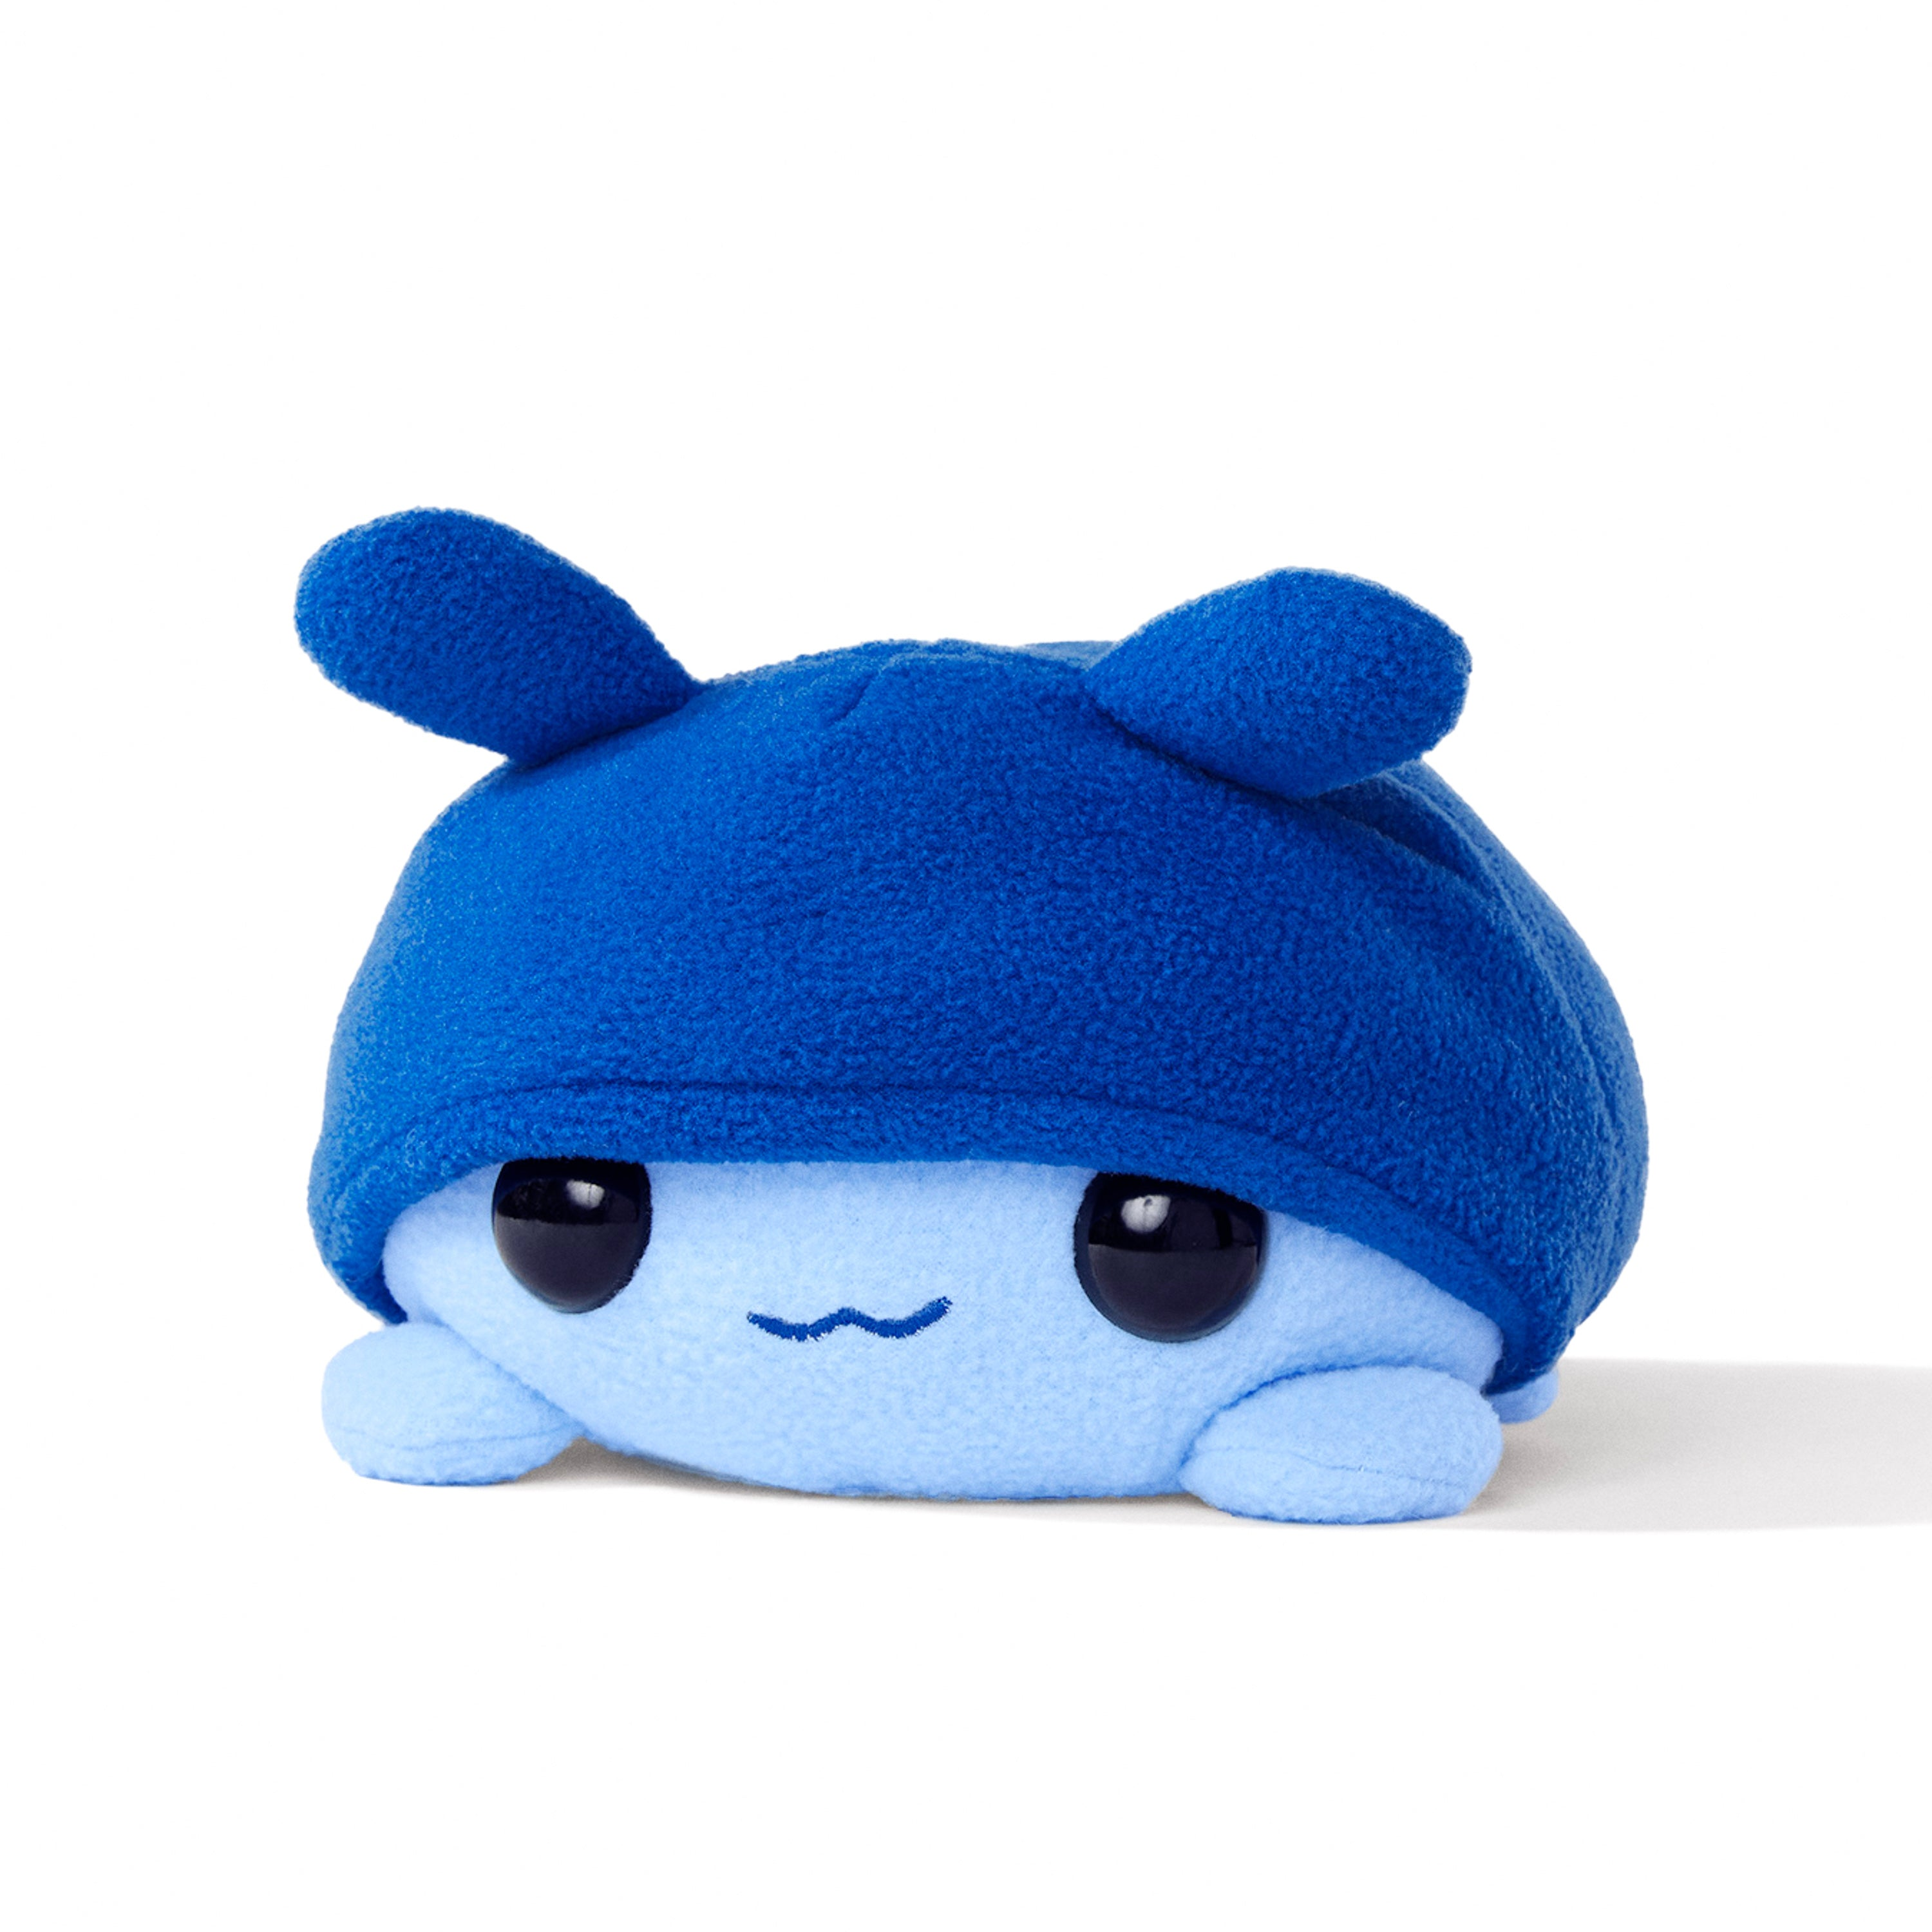 Roly Poly plush